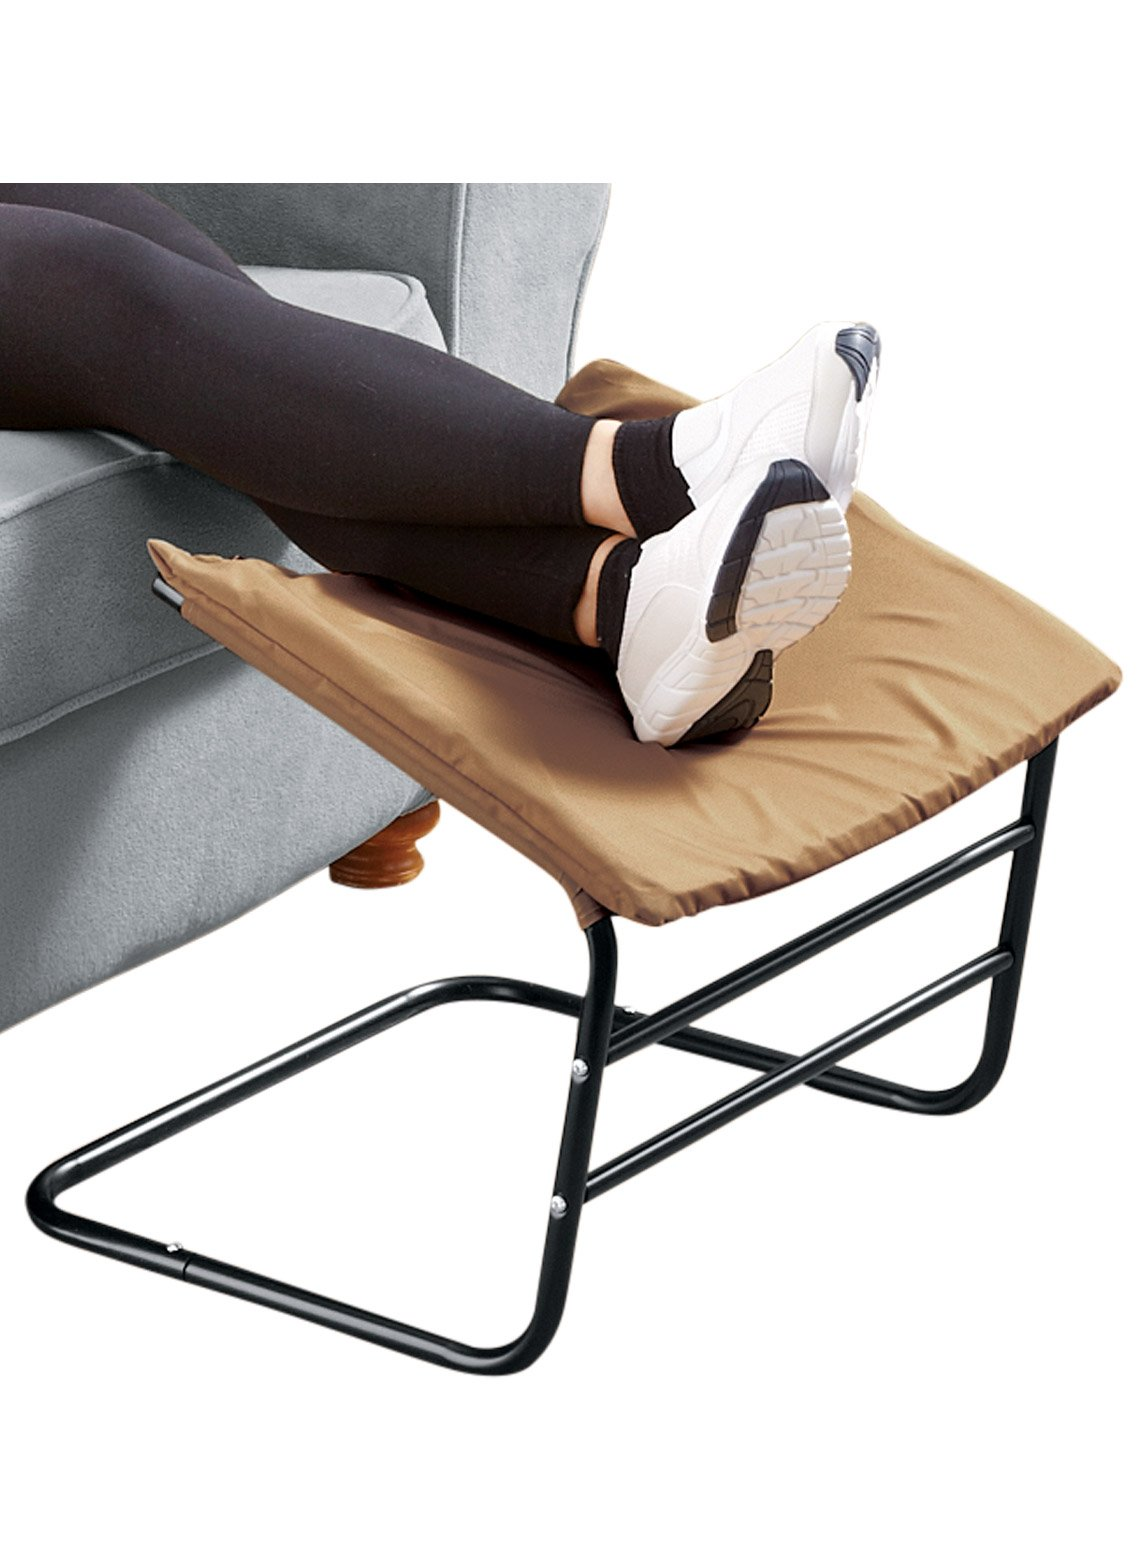 Carol Wright Gifts Leg Rest, Color Taupe, Taupe